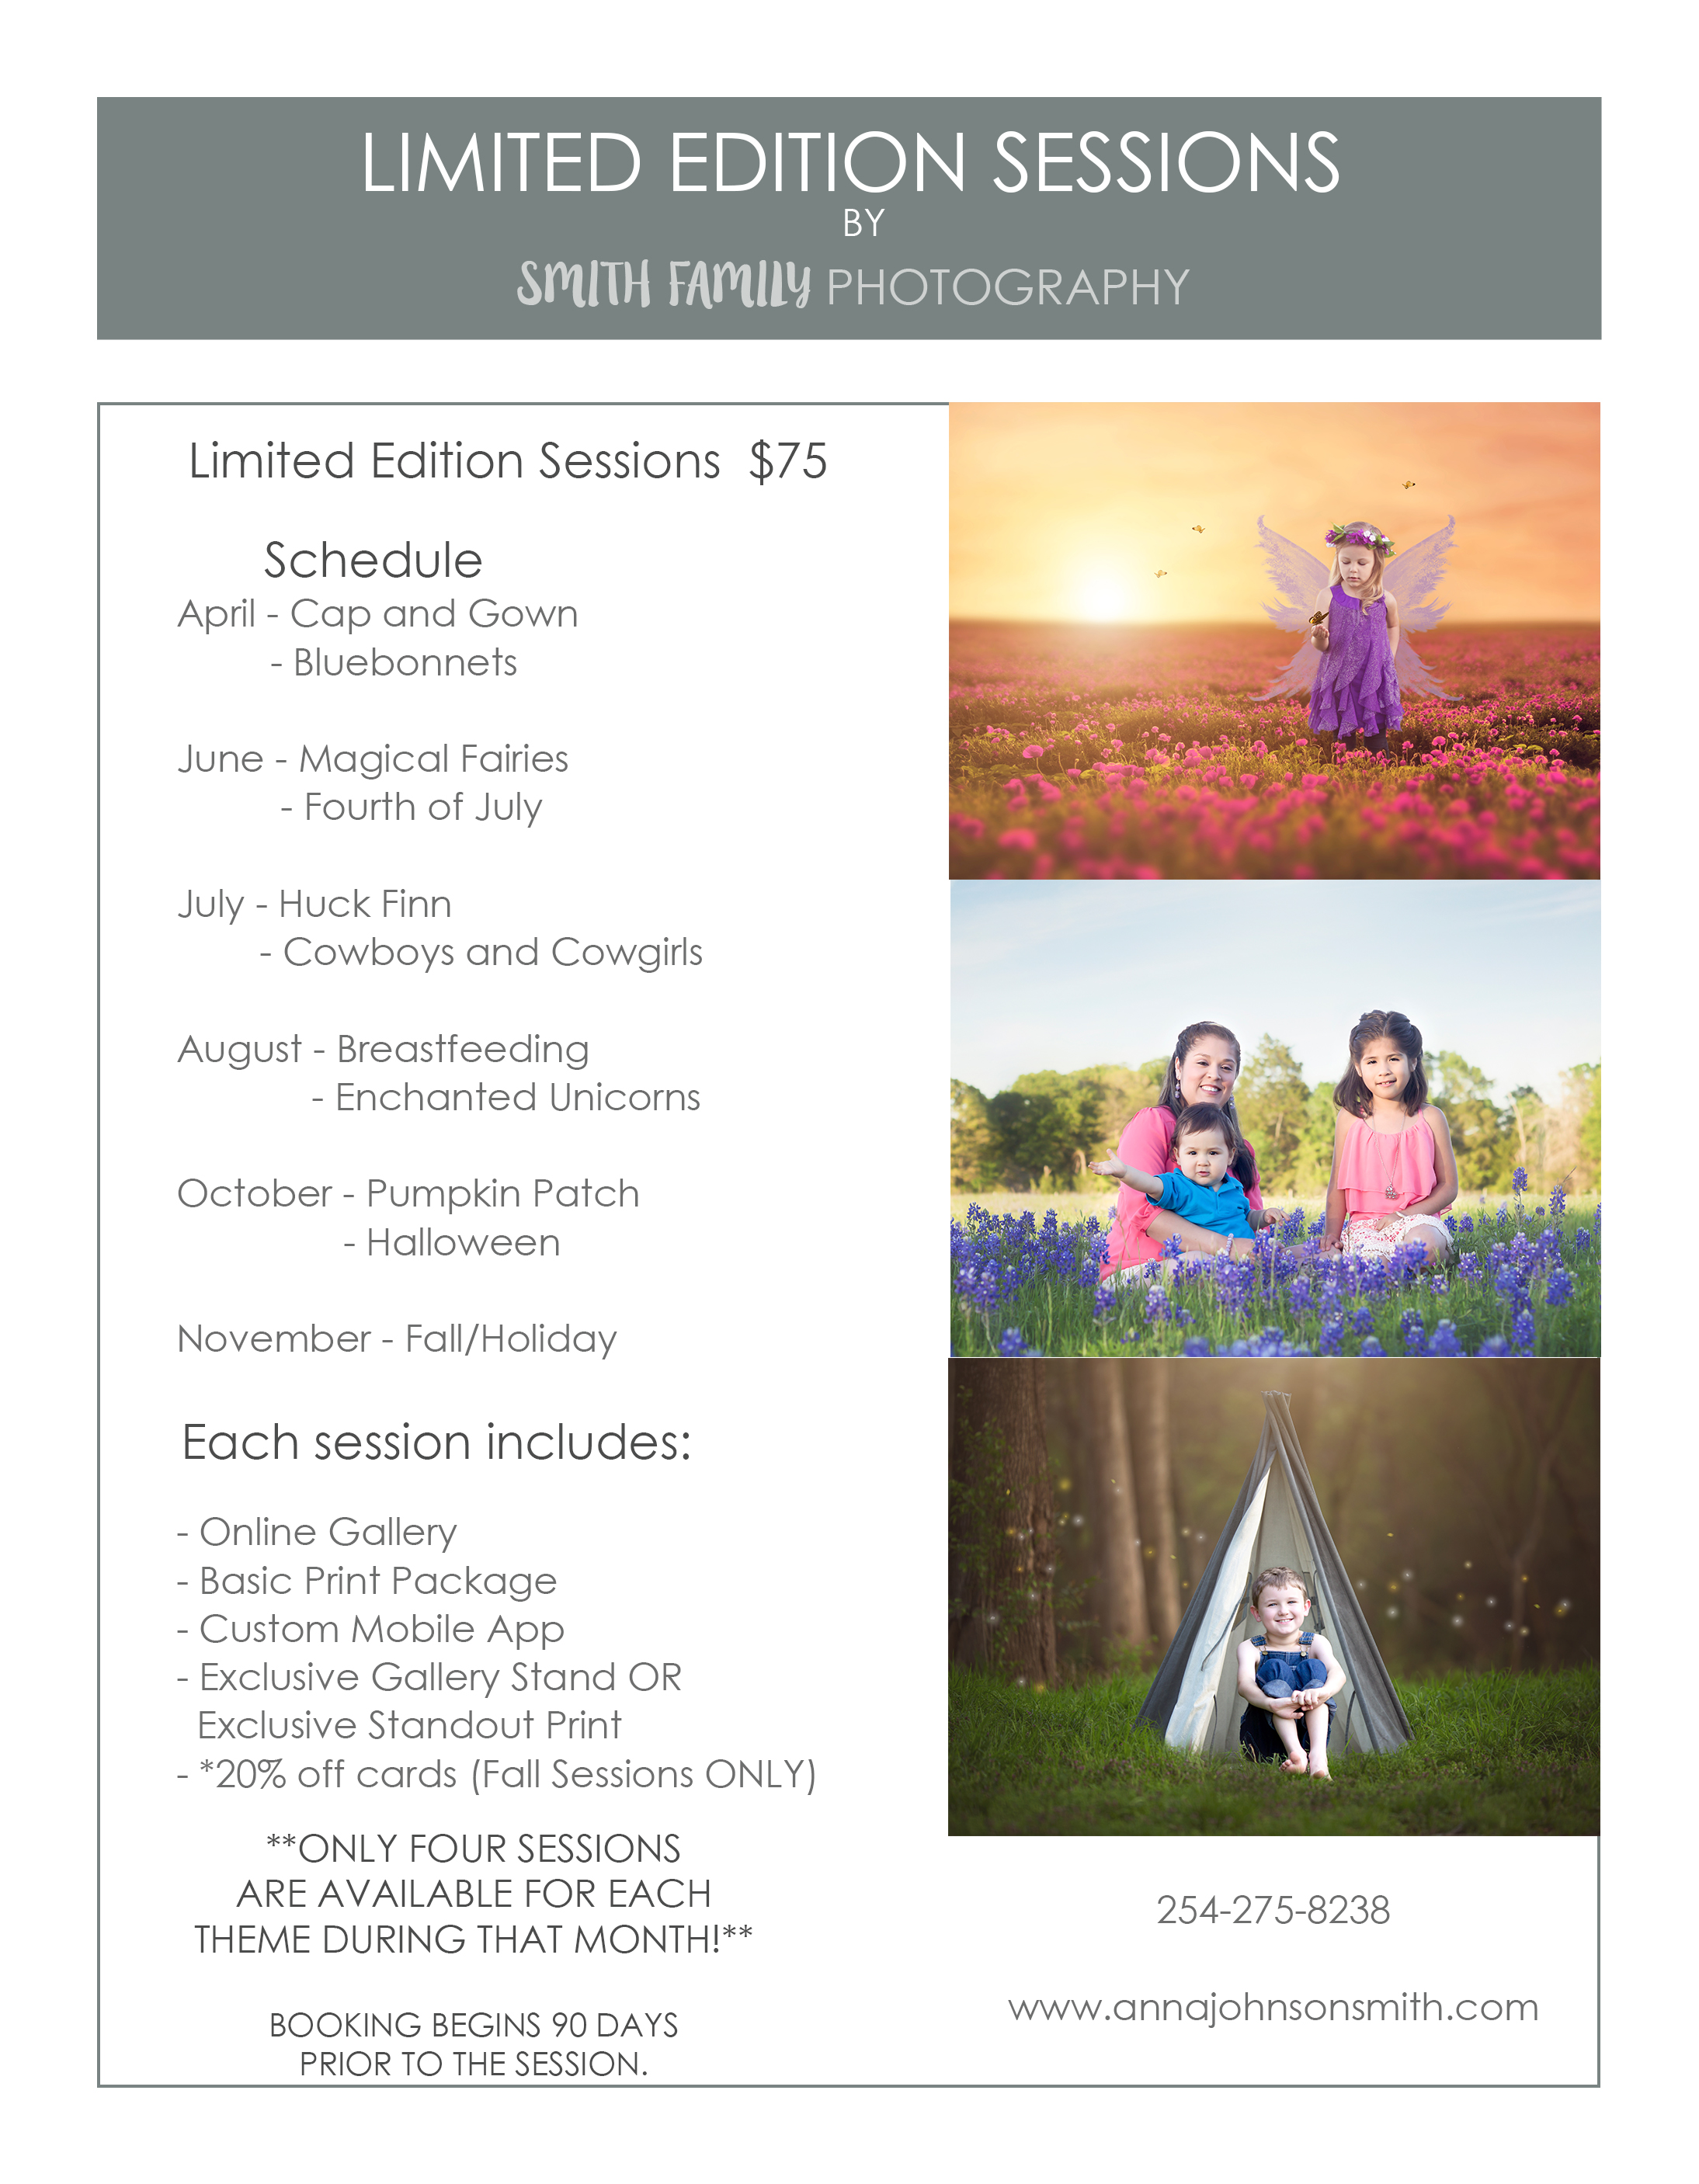 limited_edition_session_schedule_smith_family_photography_groesbeck